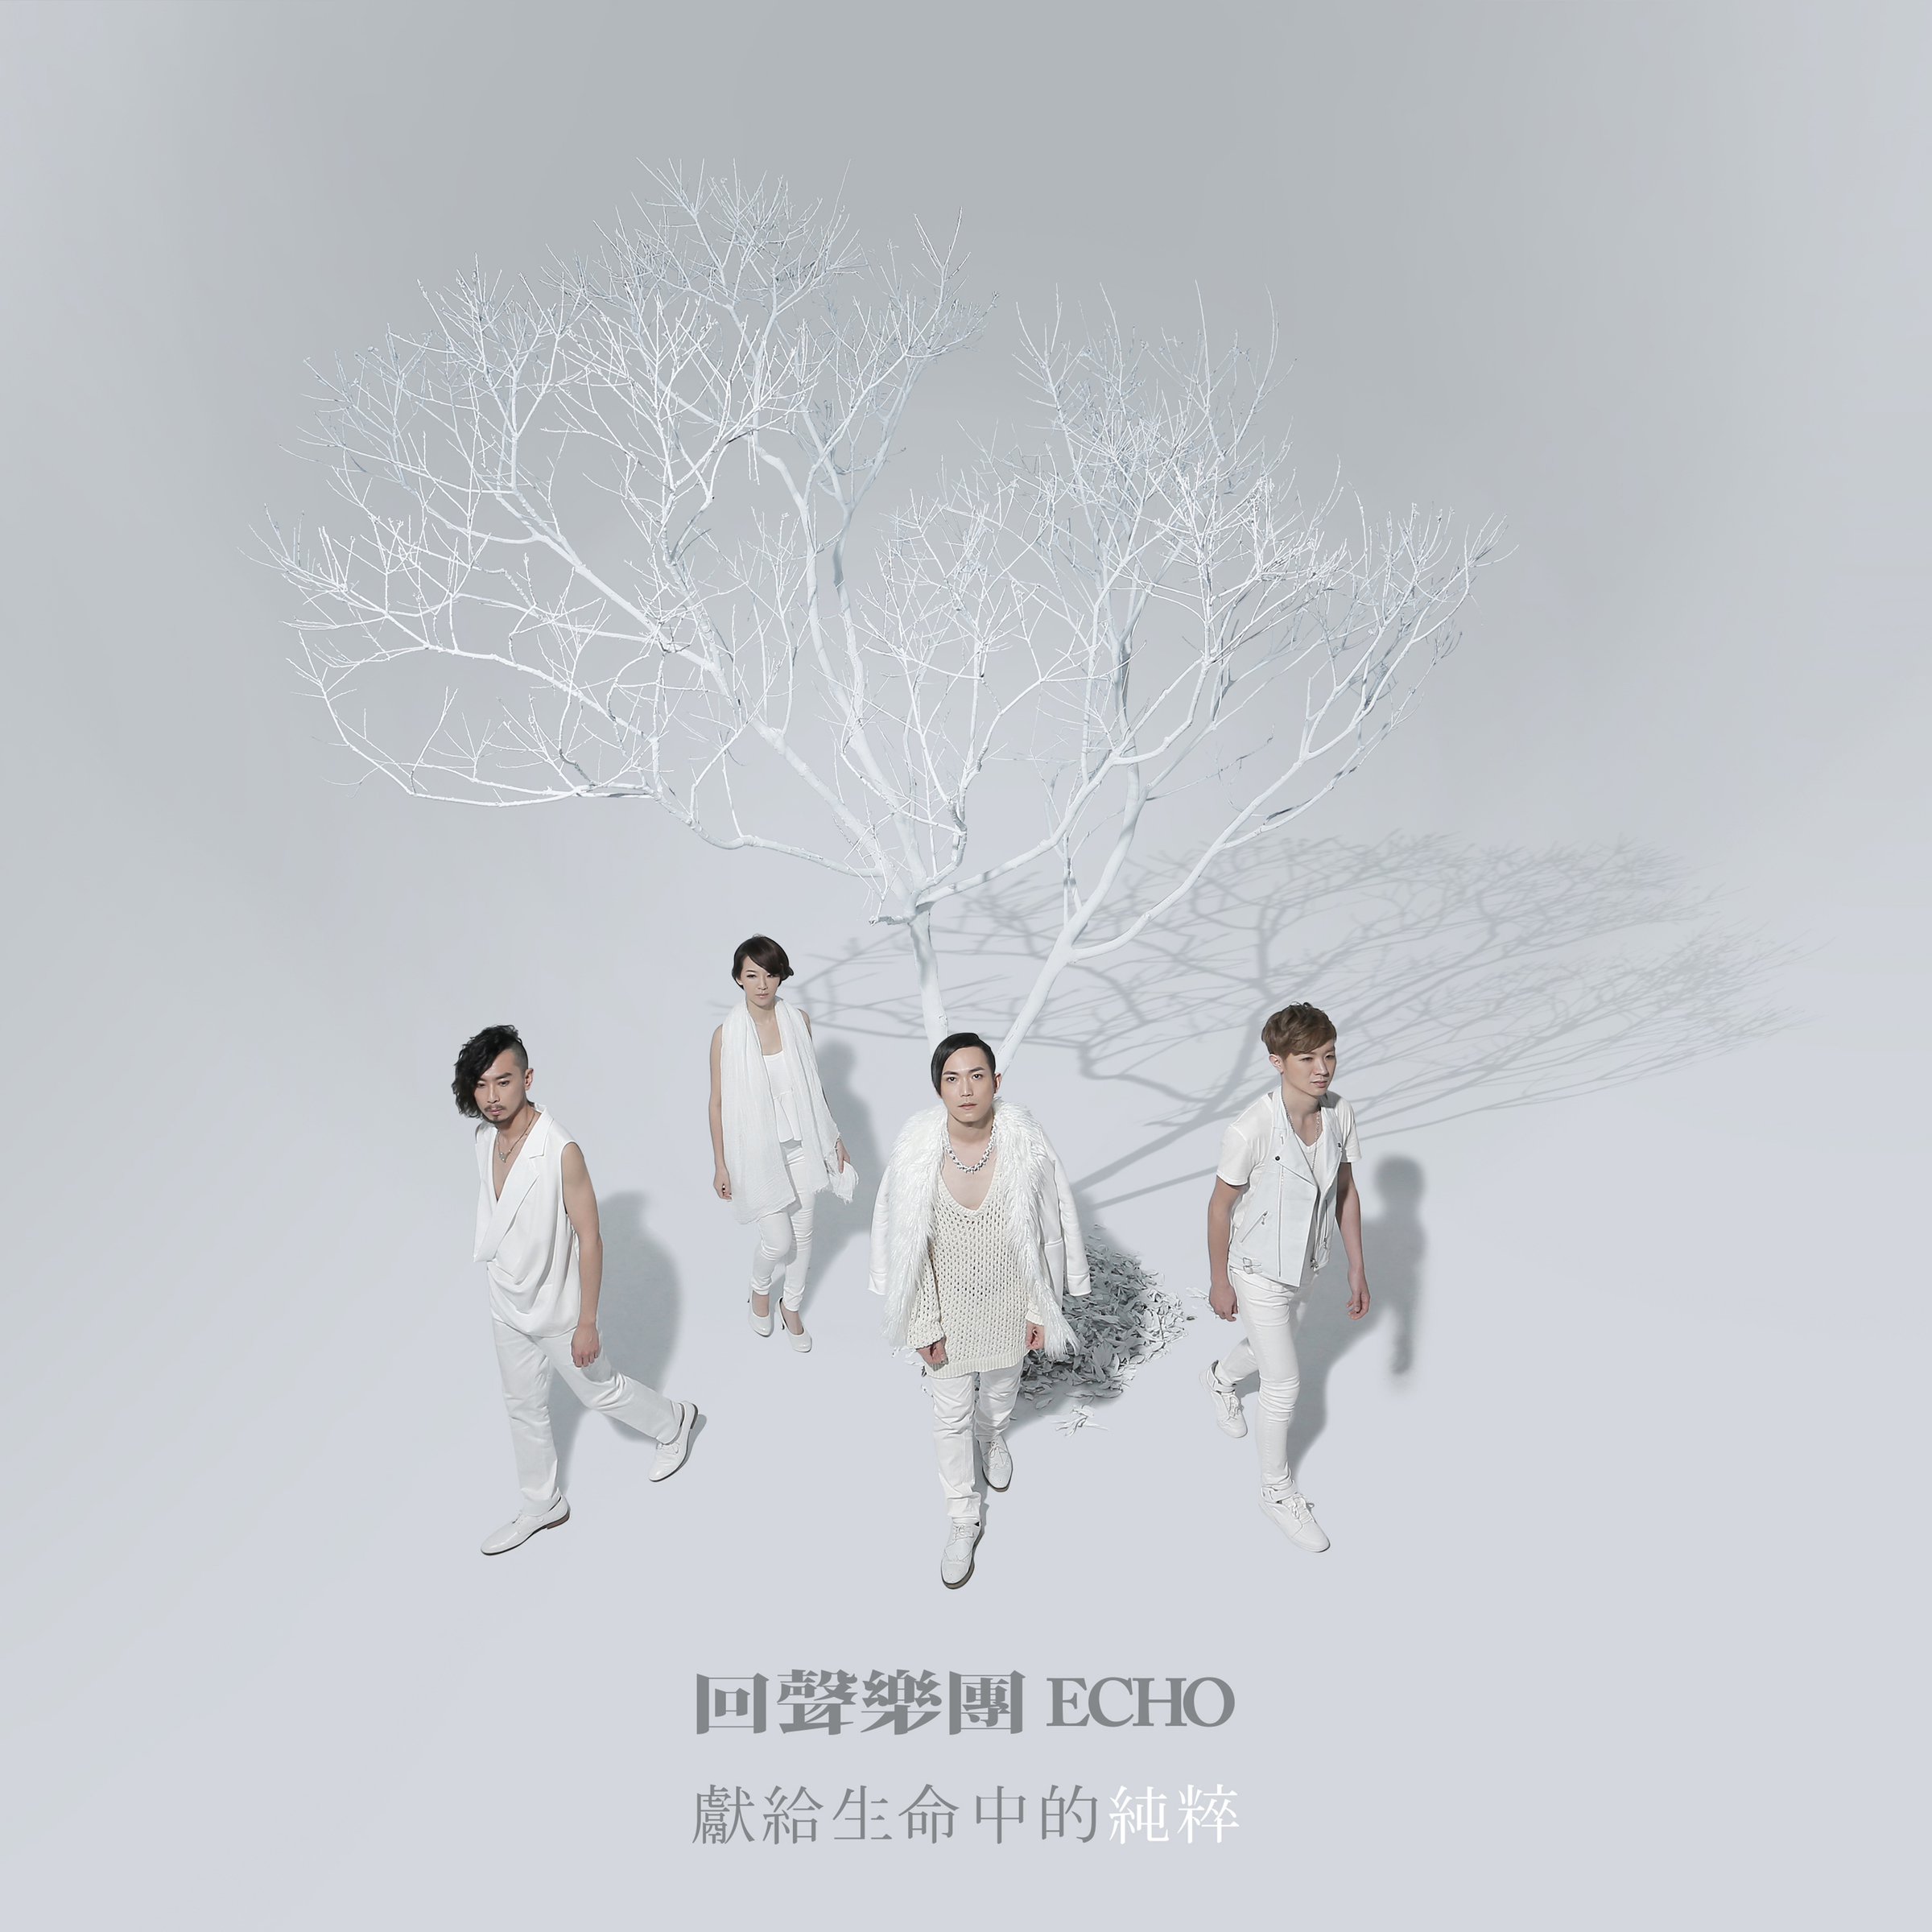 echo_itunes_cover_4000.jpg